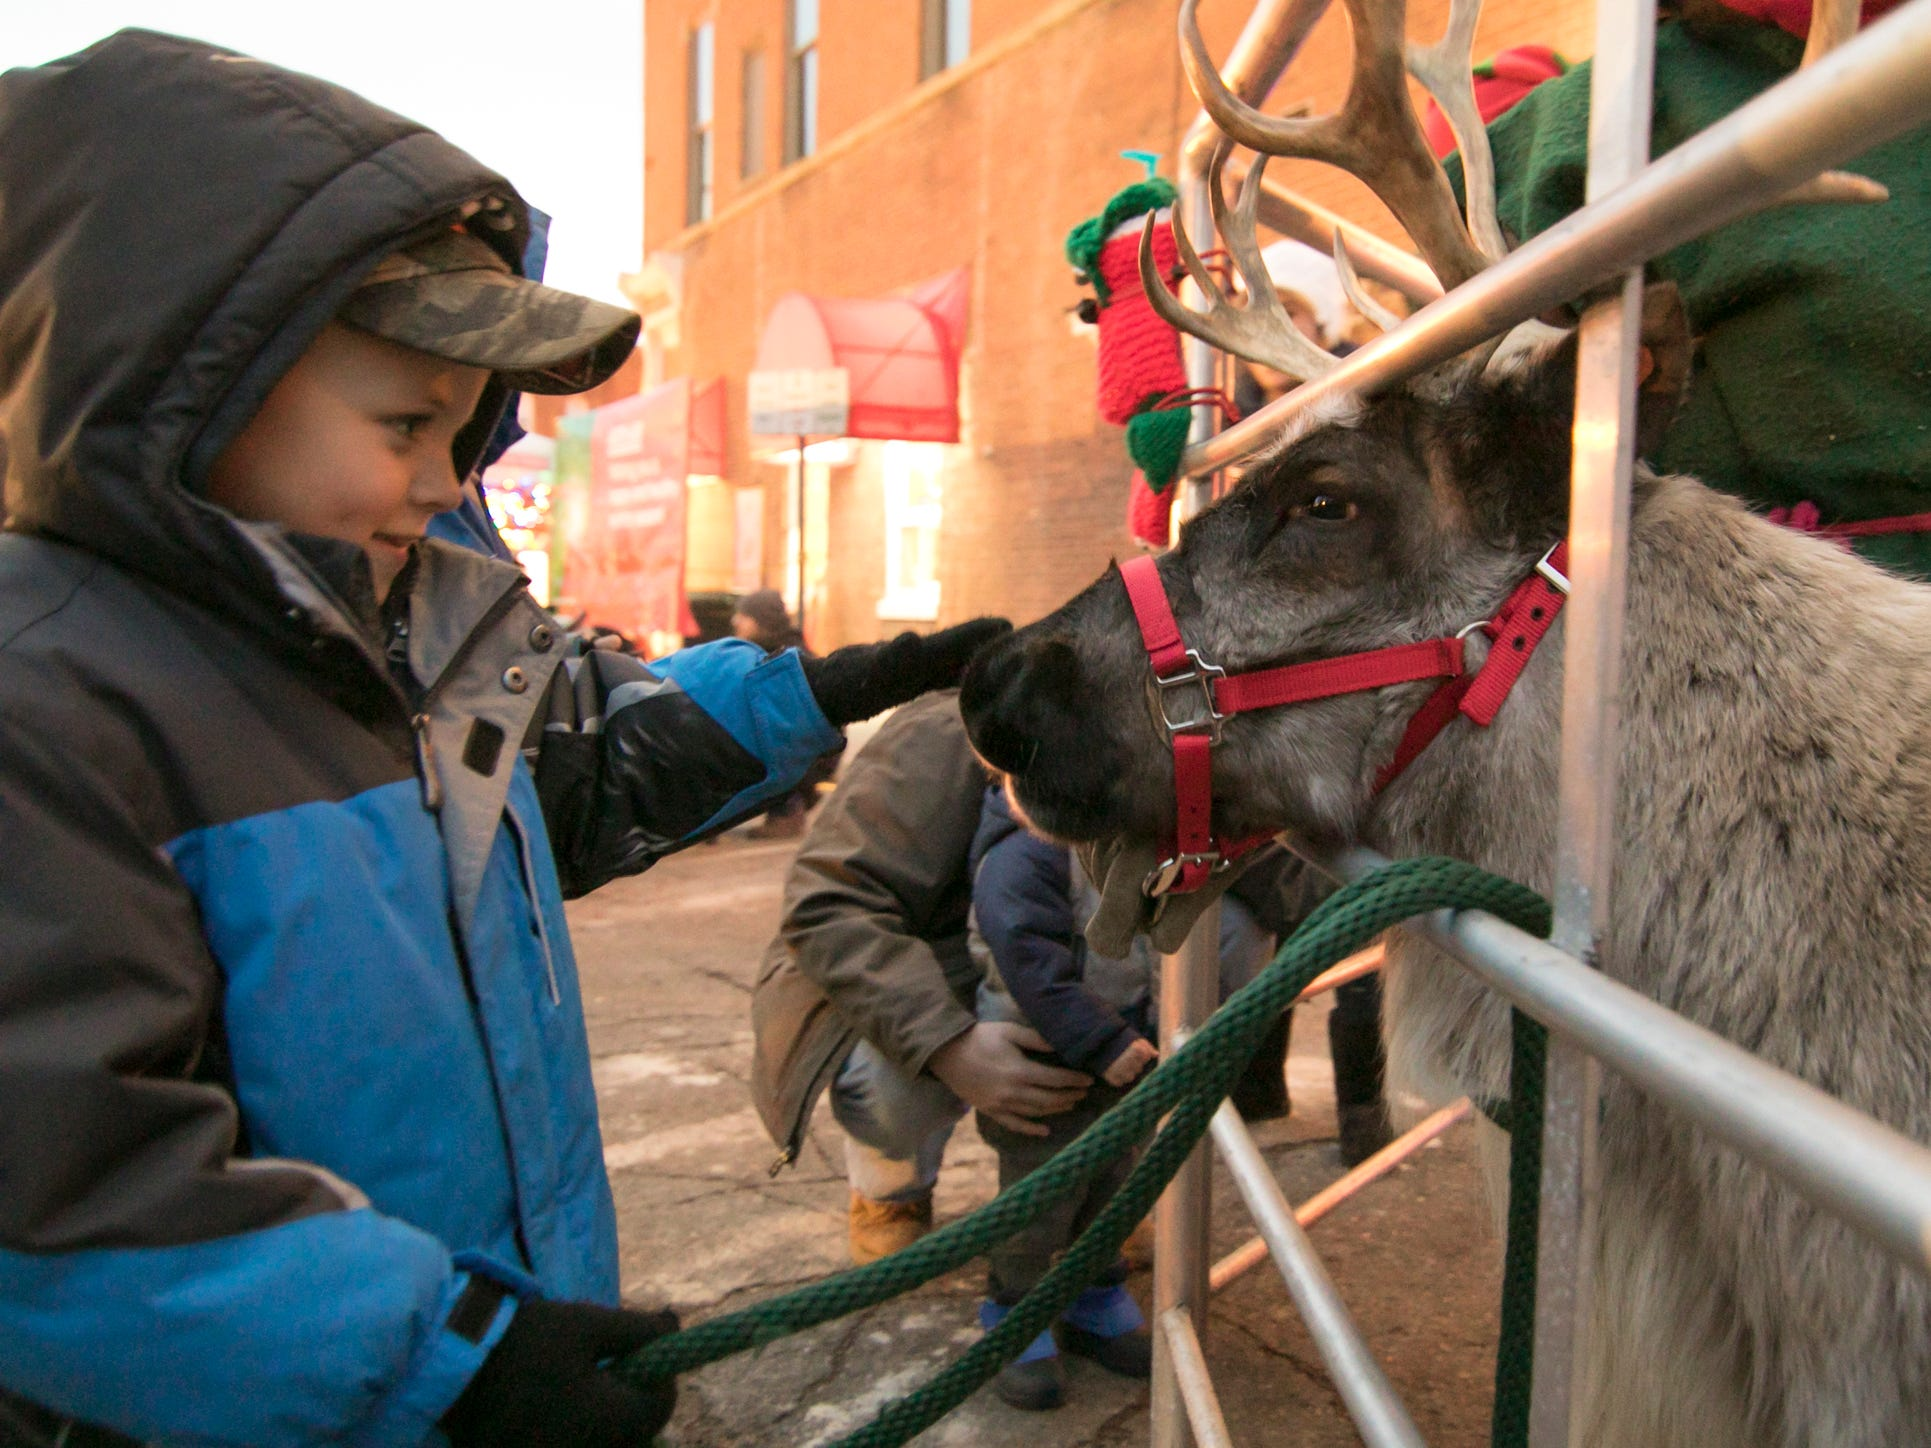 5-year-old Jonathon Osborne pets the nose of Poinsettia, one of several reindeer who were brought to the Fantasy of Lights event Friday, Nov. 23, 2018 by Shiny Star Ranch.